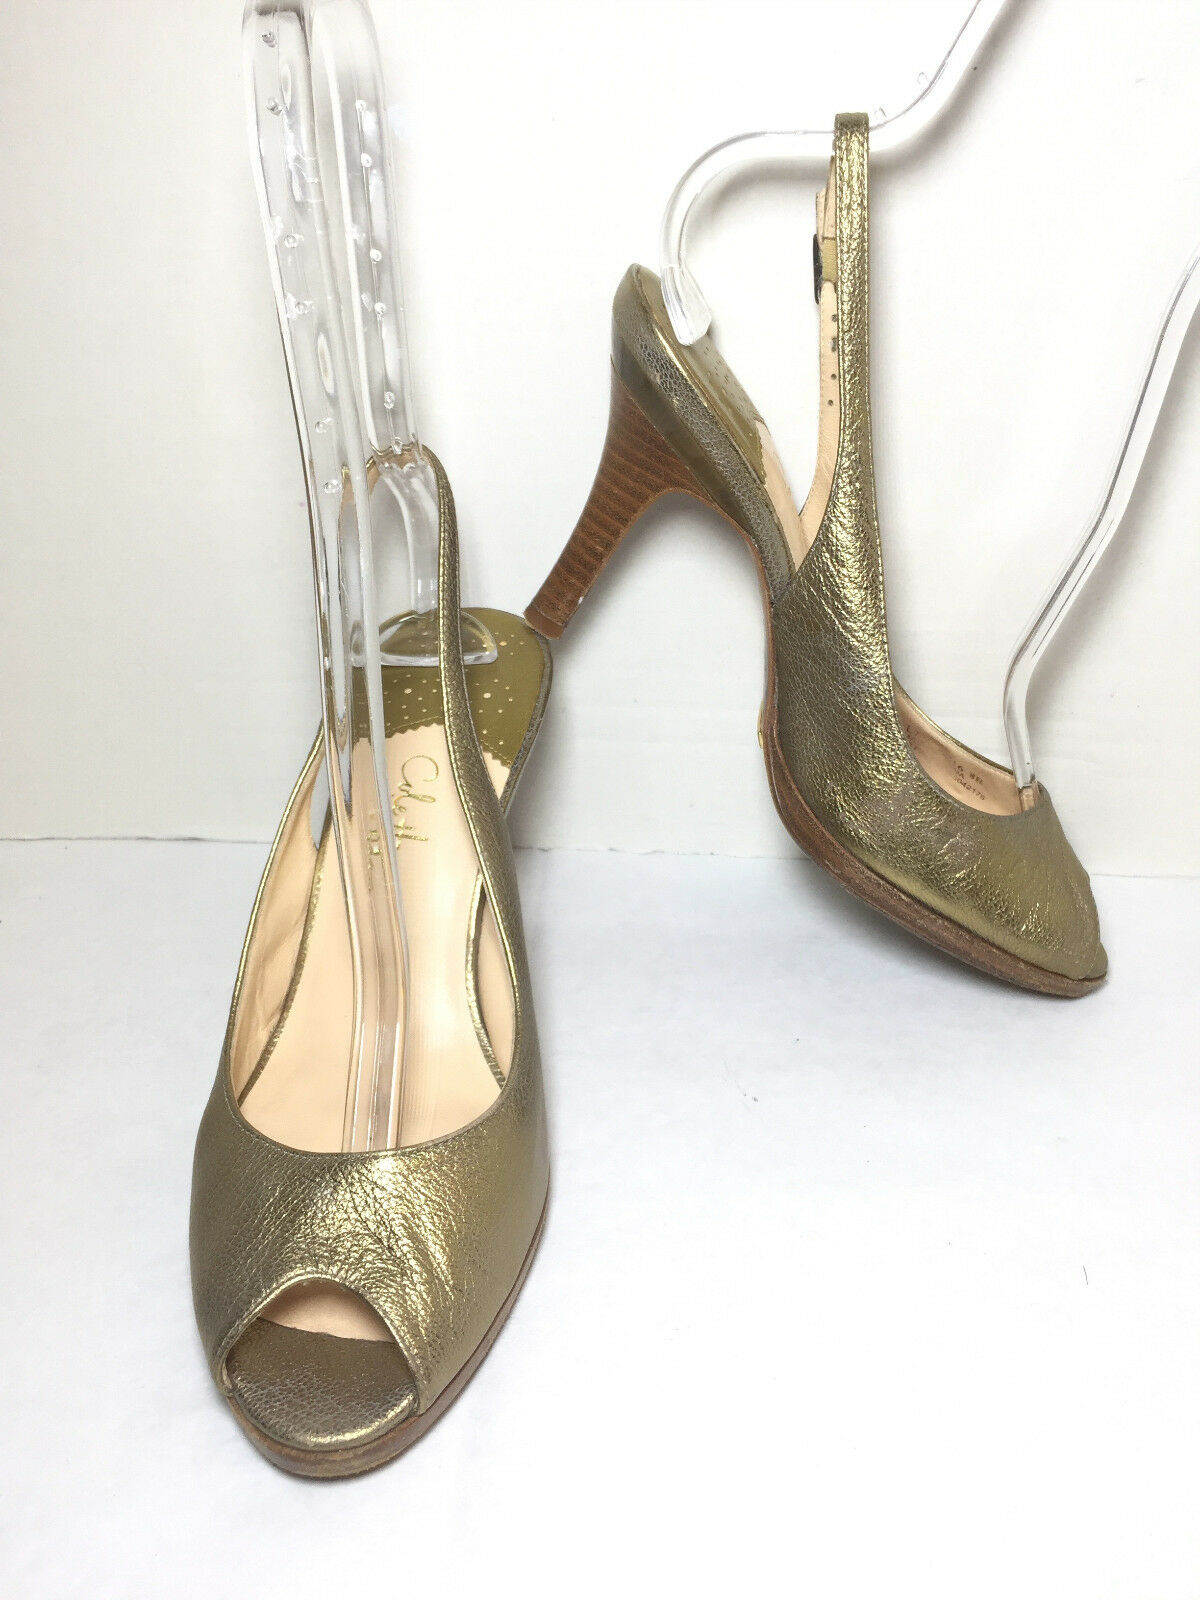 COLE HAAN Women's gold Peep Toe Slingback Pumps Size US 8 B